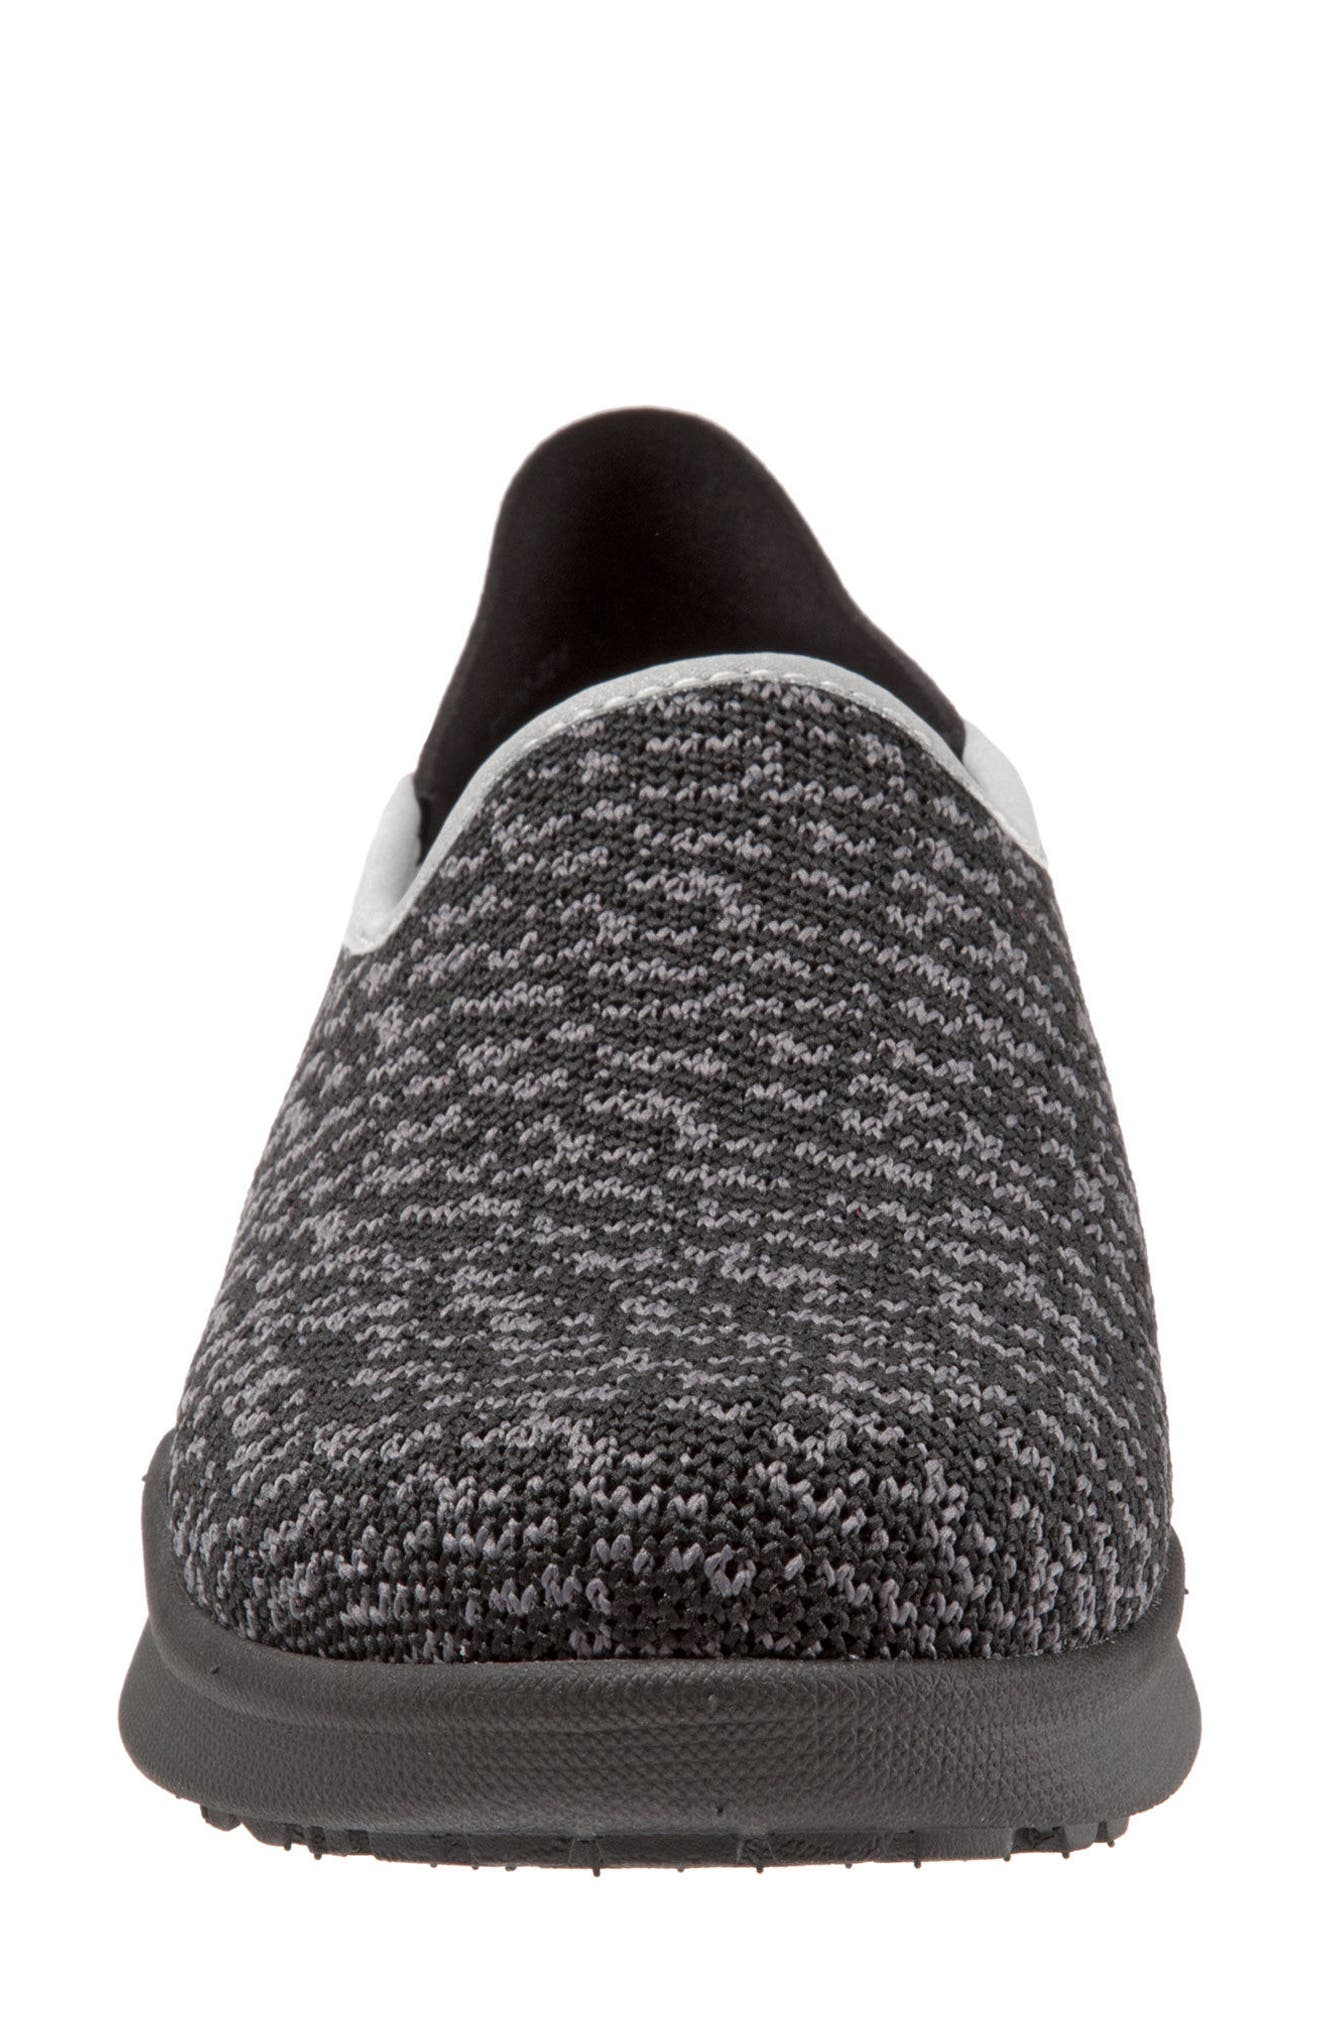 Simba Convertible Slip-On,                             Alternate thumbnail 5, color,                             BLACK FABRIC